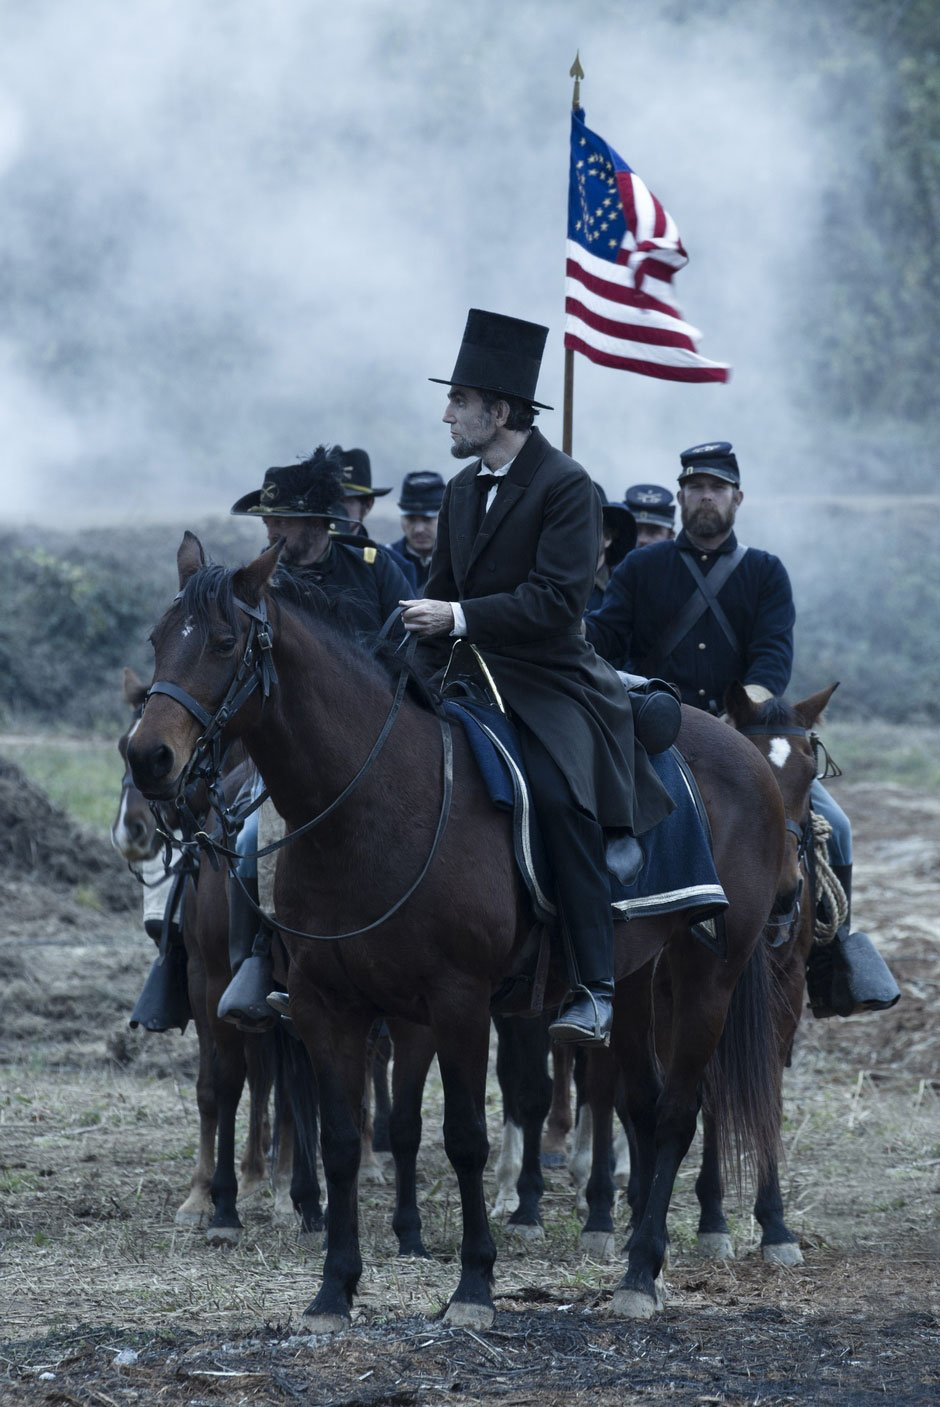 Daniel-Day-Lewis-in-Lincoln-2012-Movie-Image-4